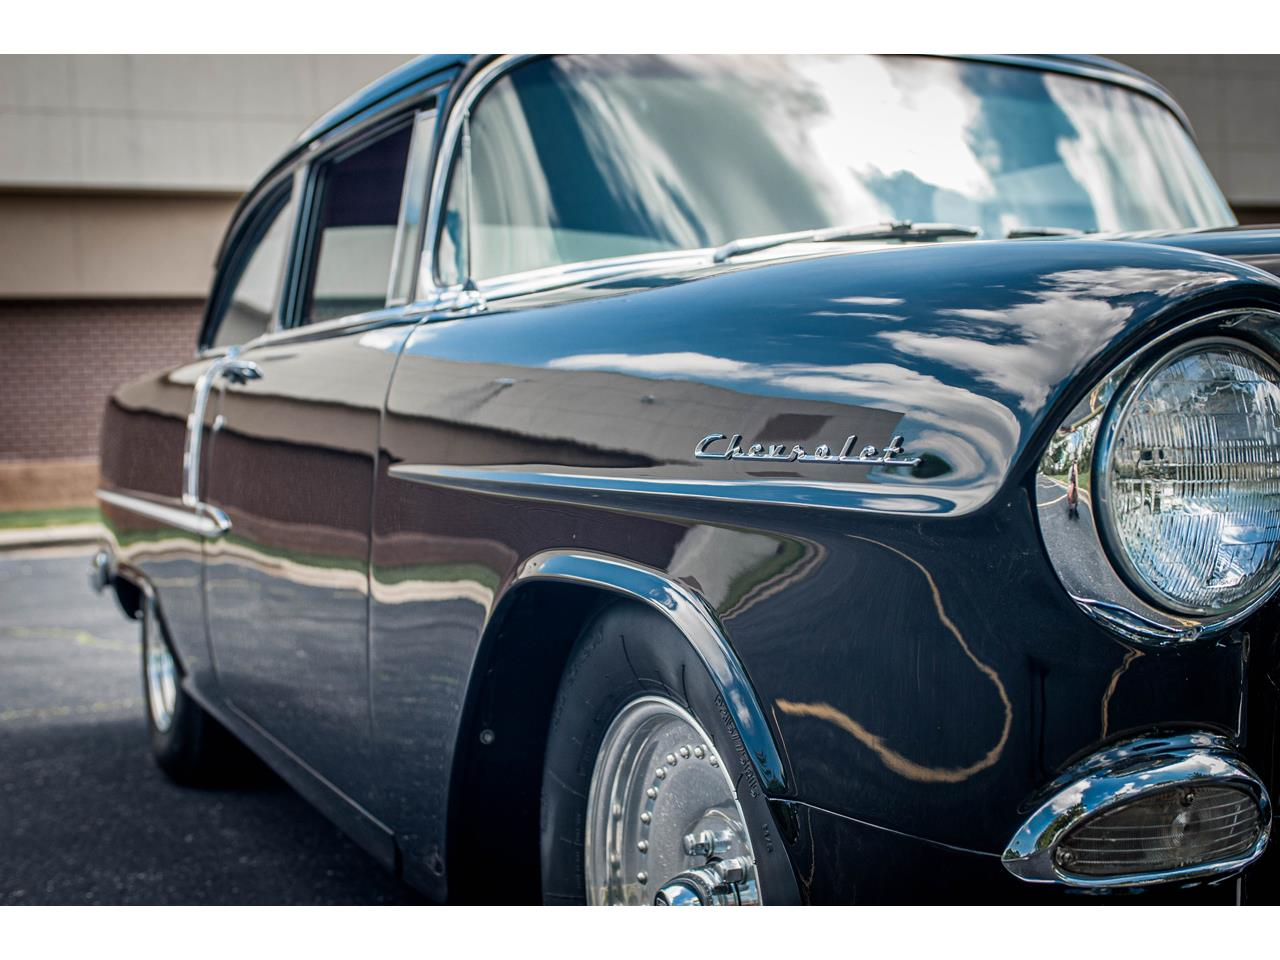 Large Picture of 1955 Chevrolet Bel Air located in Illinois - $48,500.00 - QB9F